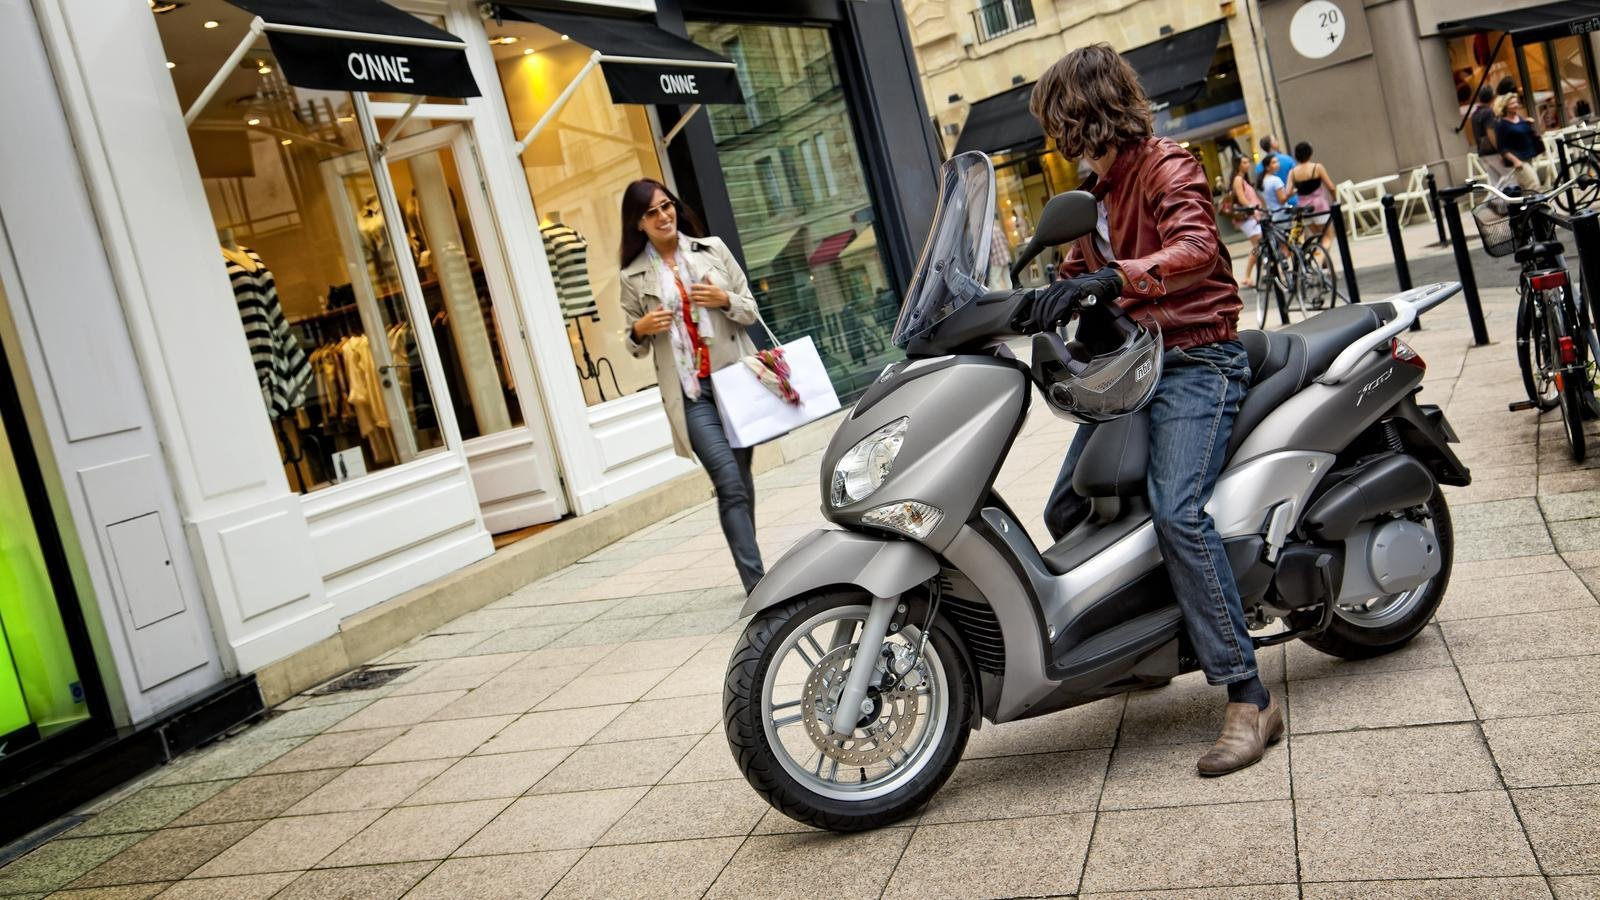 2012 yamaha x city 250 picture 459271 motorcycle. Black Bedroom Furniture Sets. Home Design Ideas